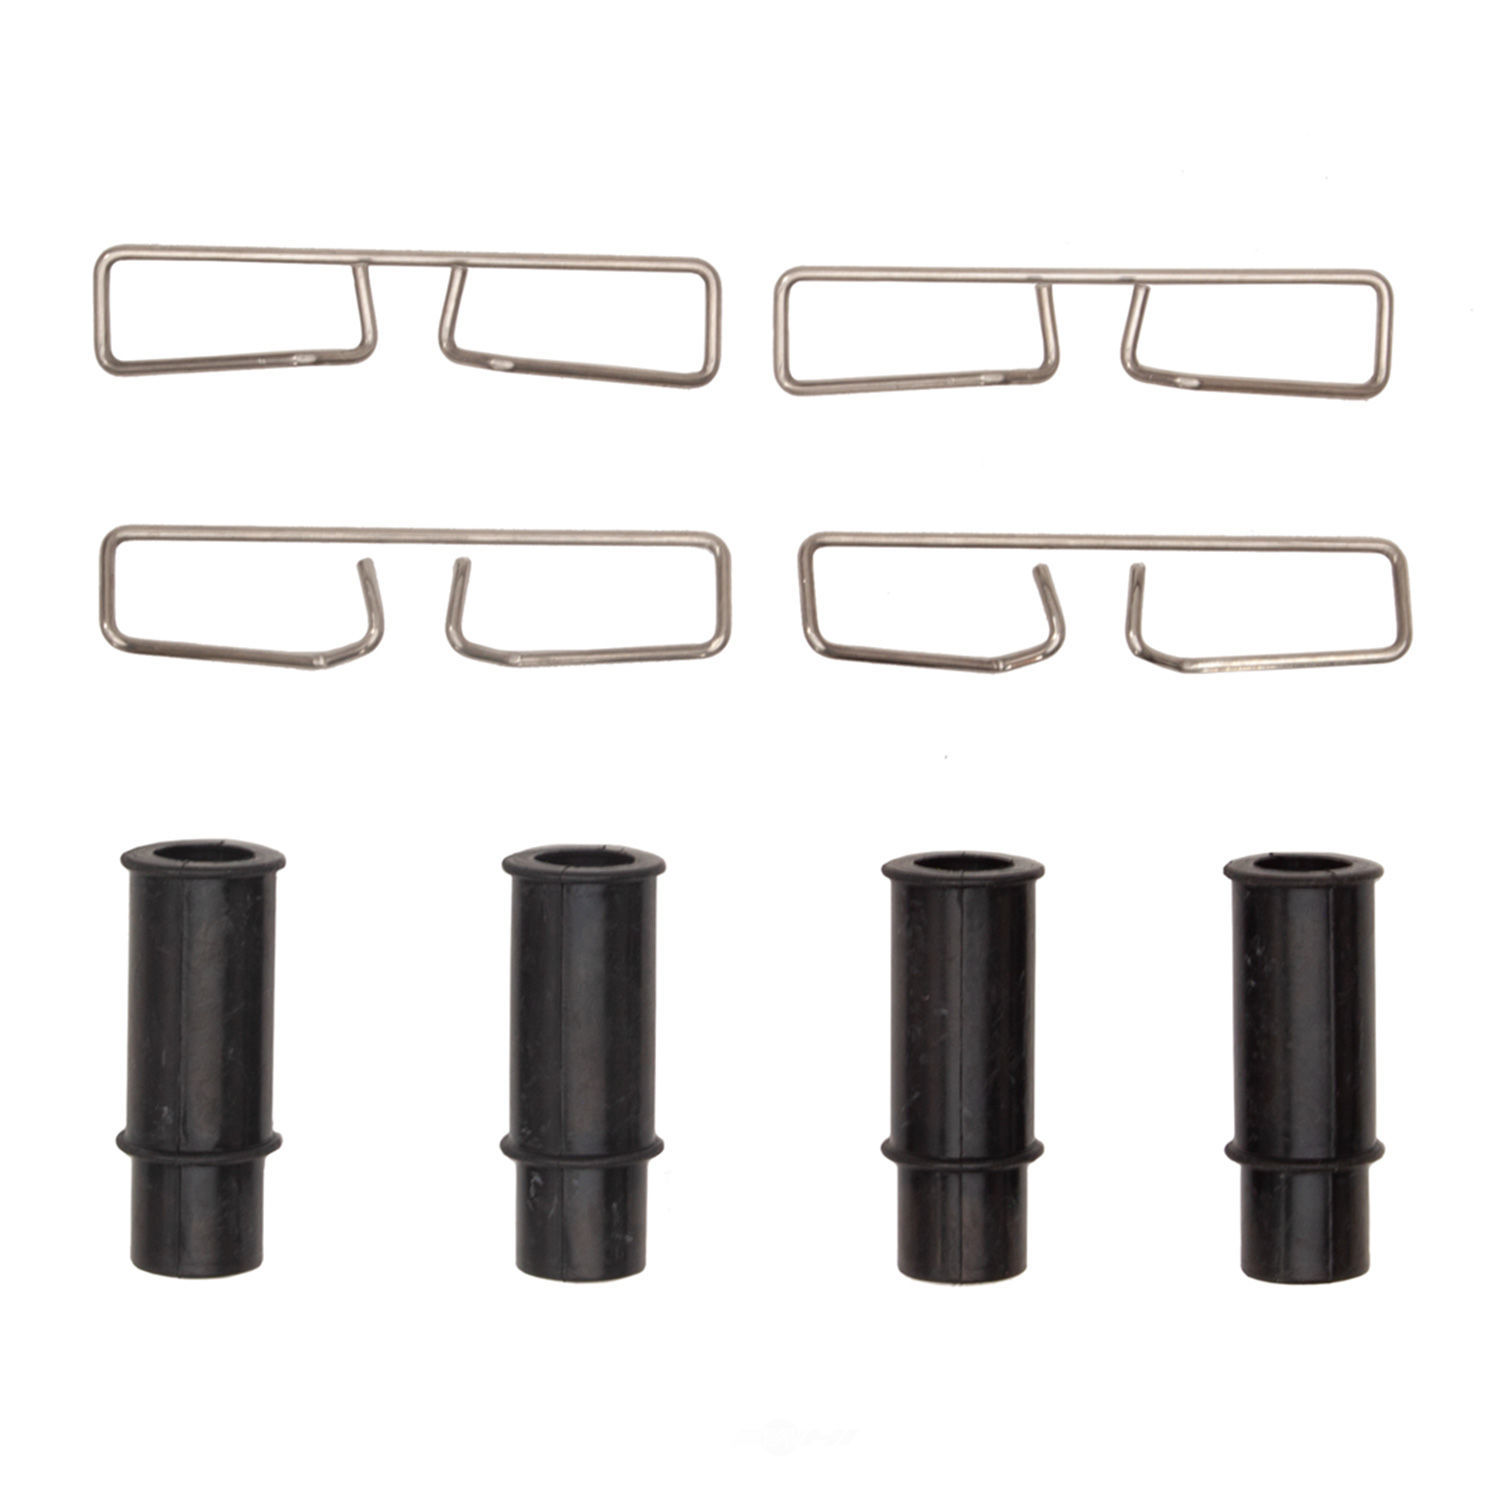 DFC - DFC Disc Brake Hardware Kit - DF1 340-42001